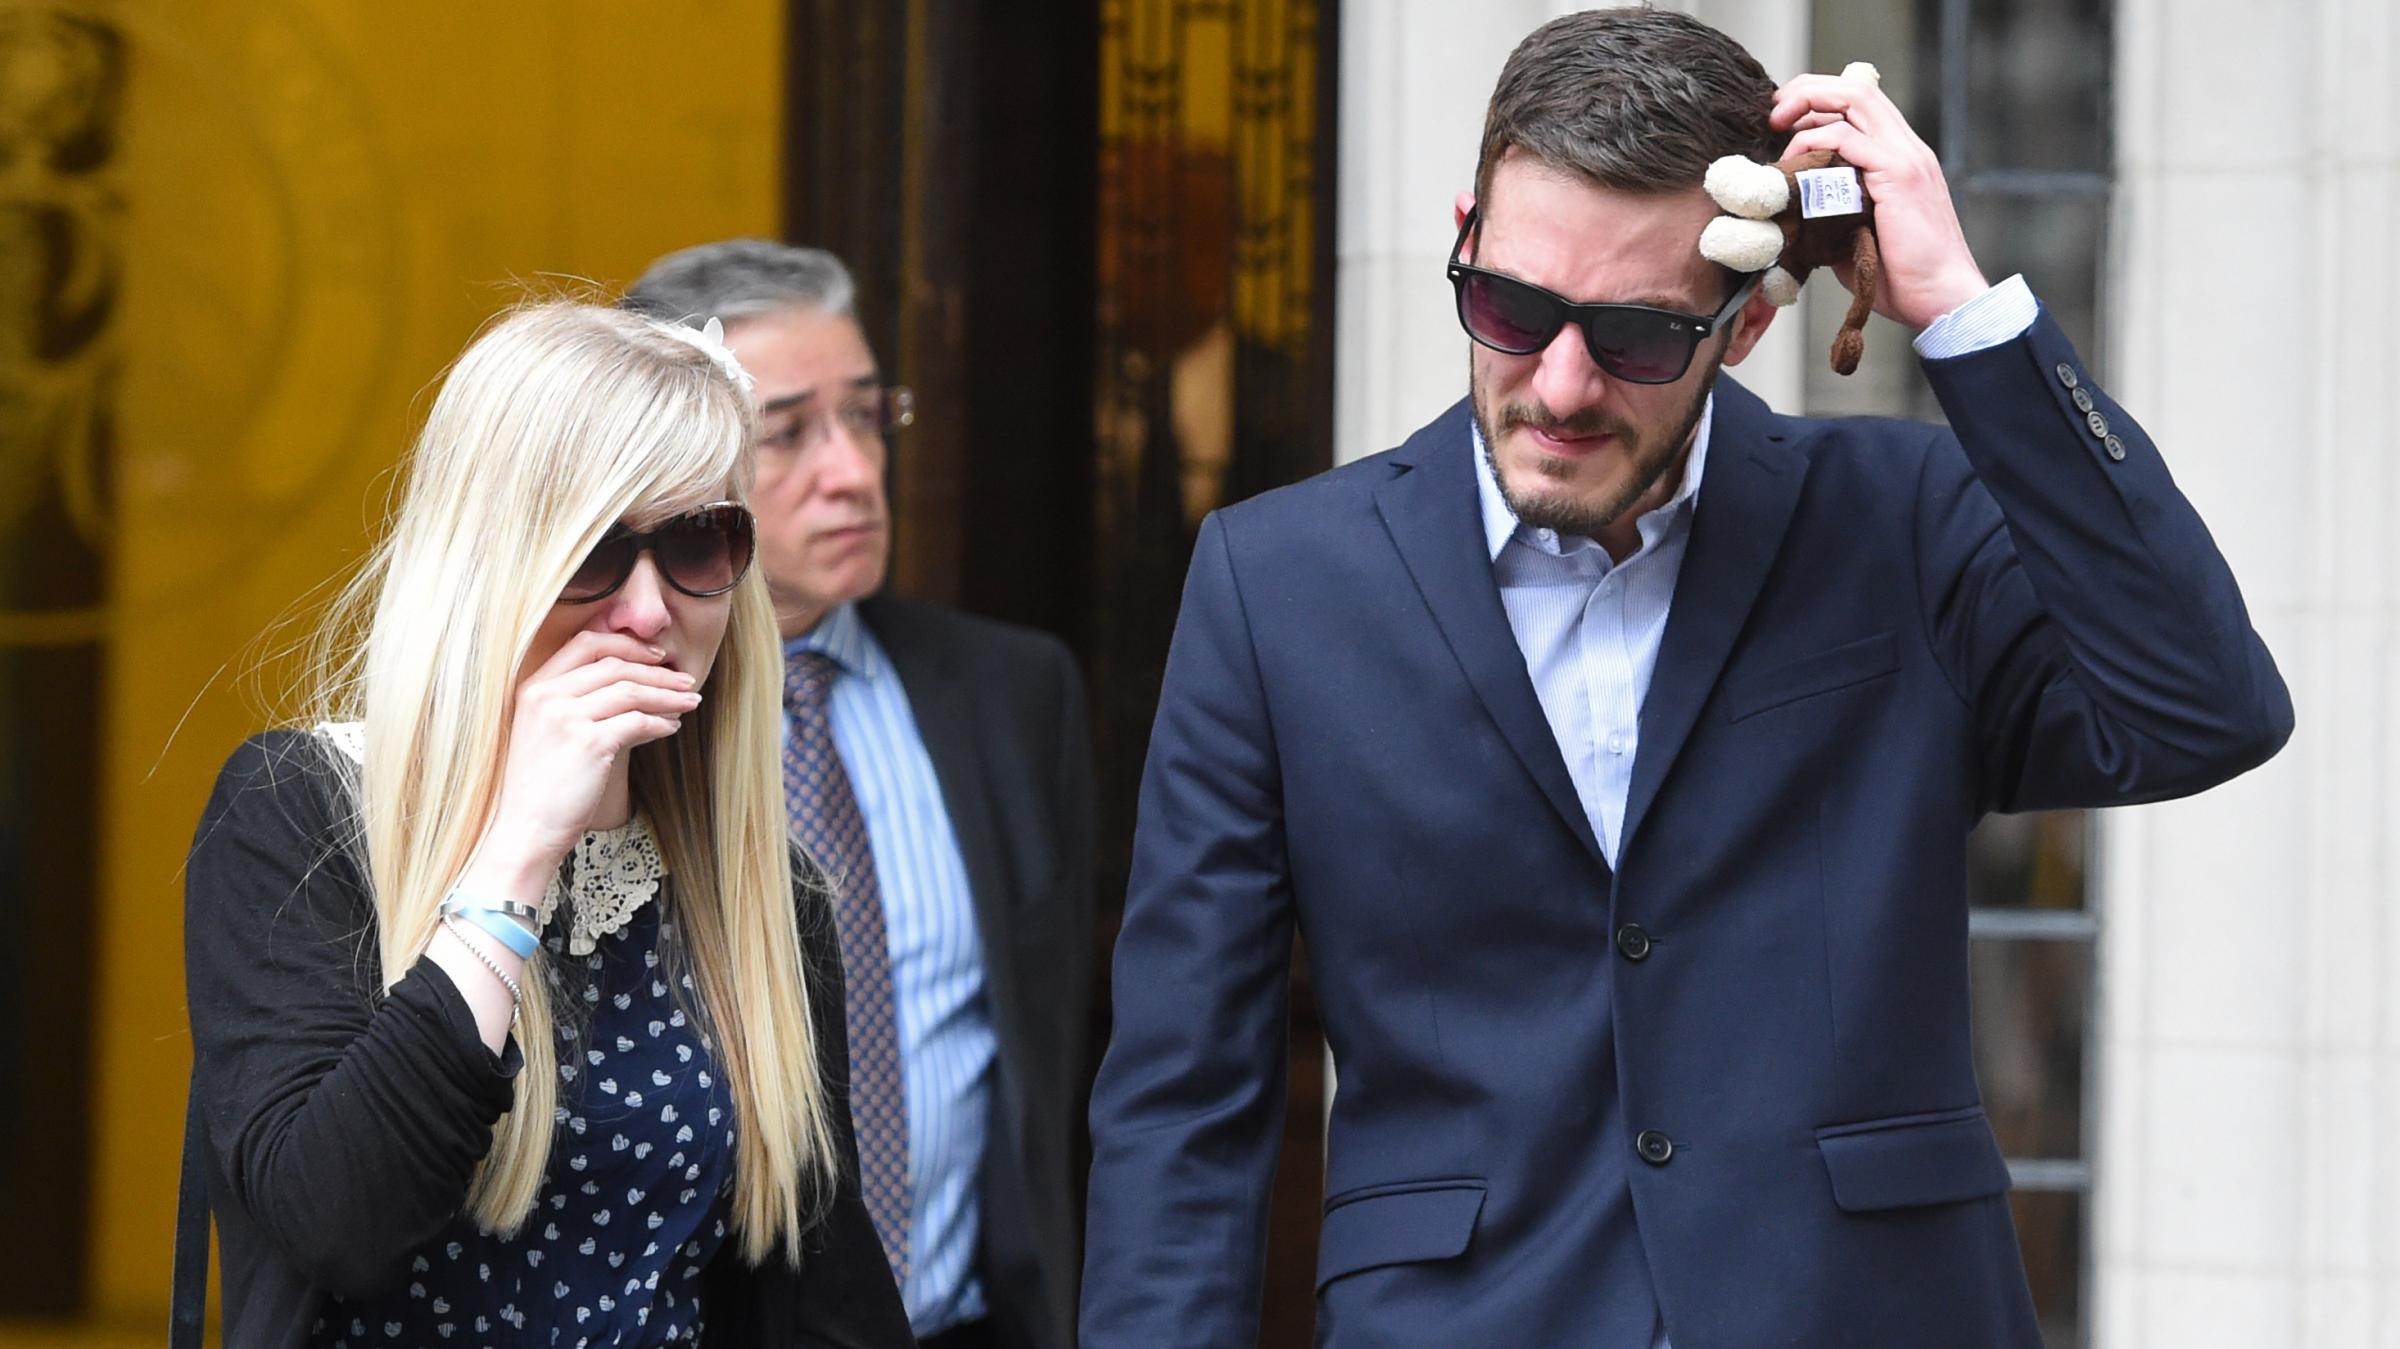 Terminally ill baby Charlie Gard must be kept on life support